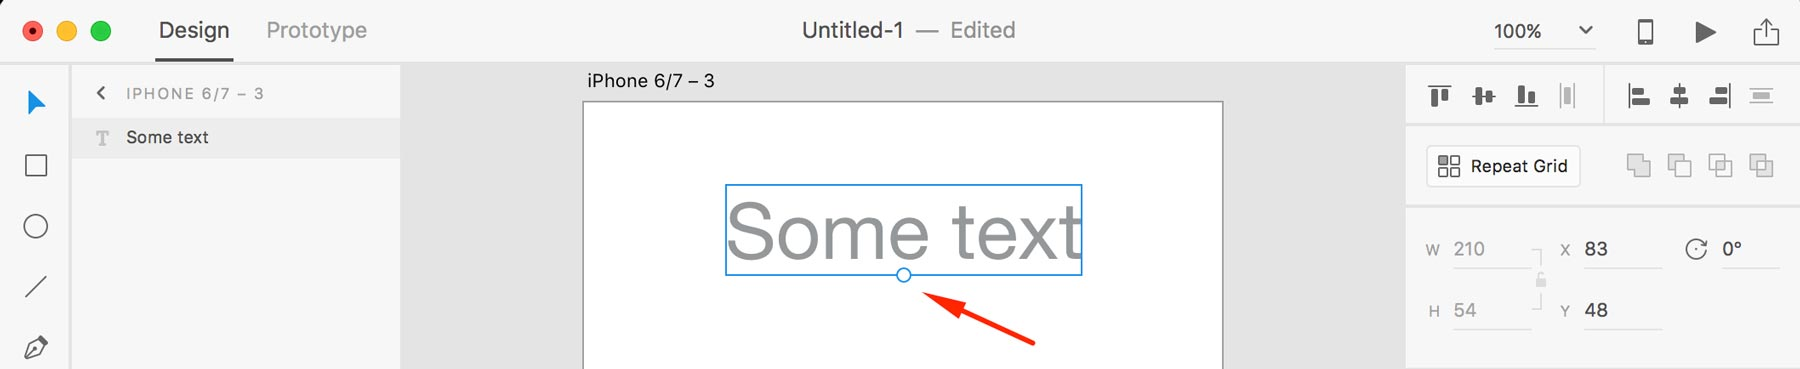 Working with text in adobe xd learn adobe xd with xdguru text handles xd ccuart Image collections